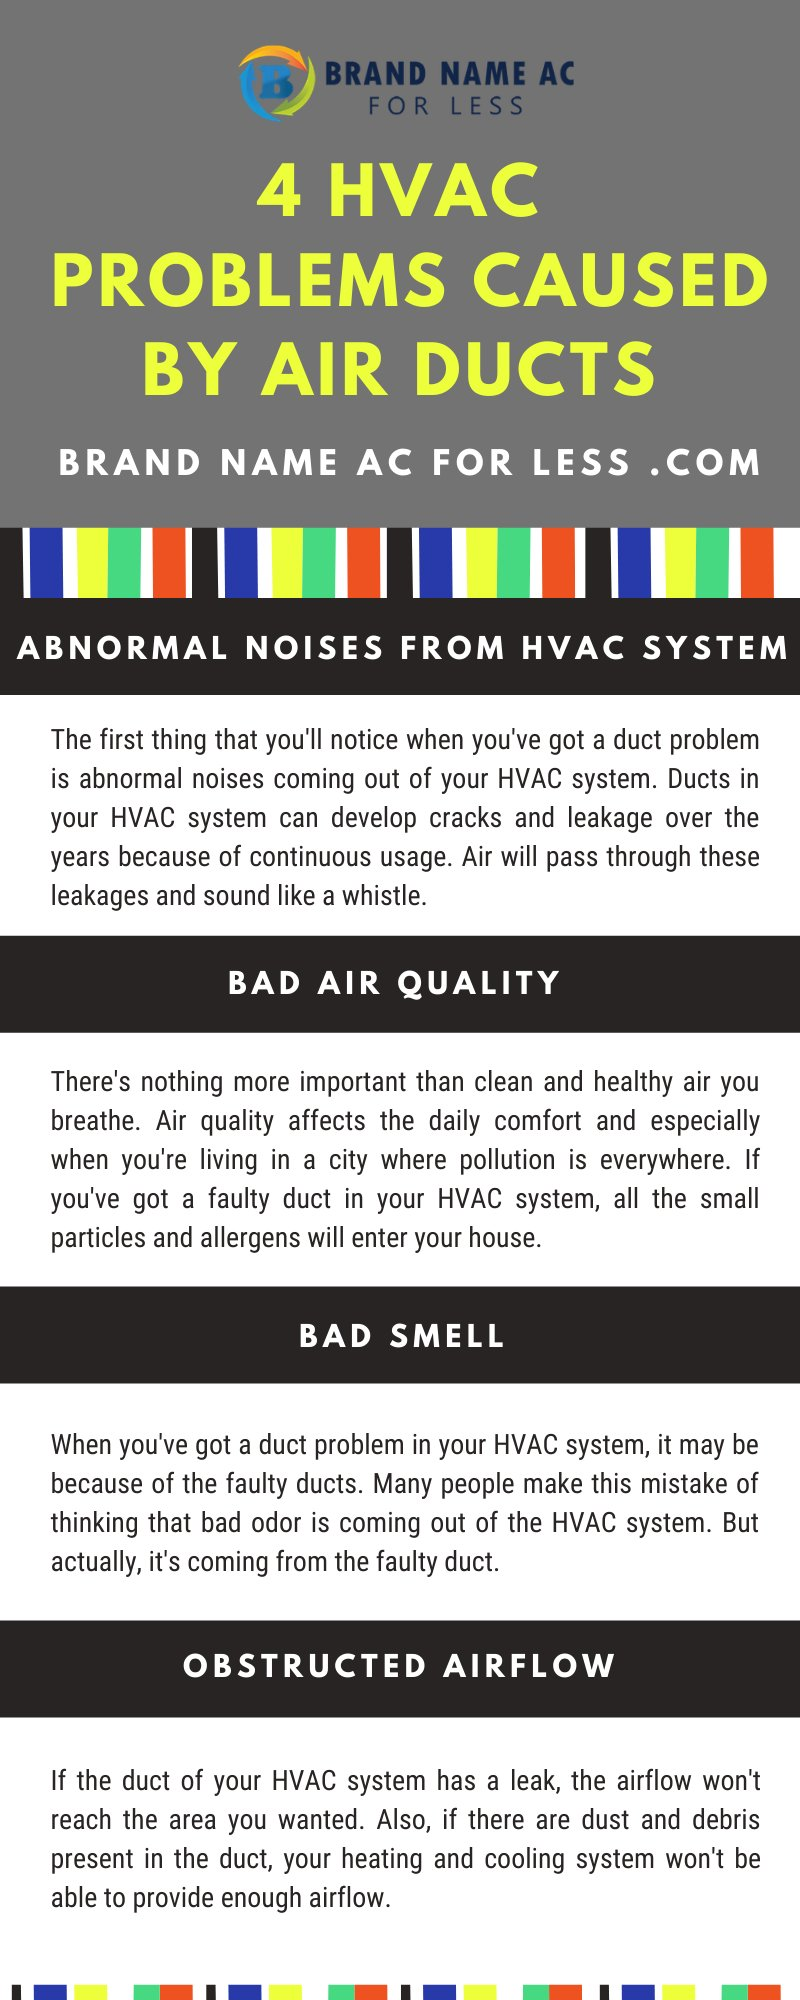 4 HVAC Problems Caused By Duct Issues